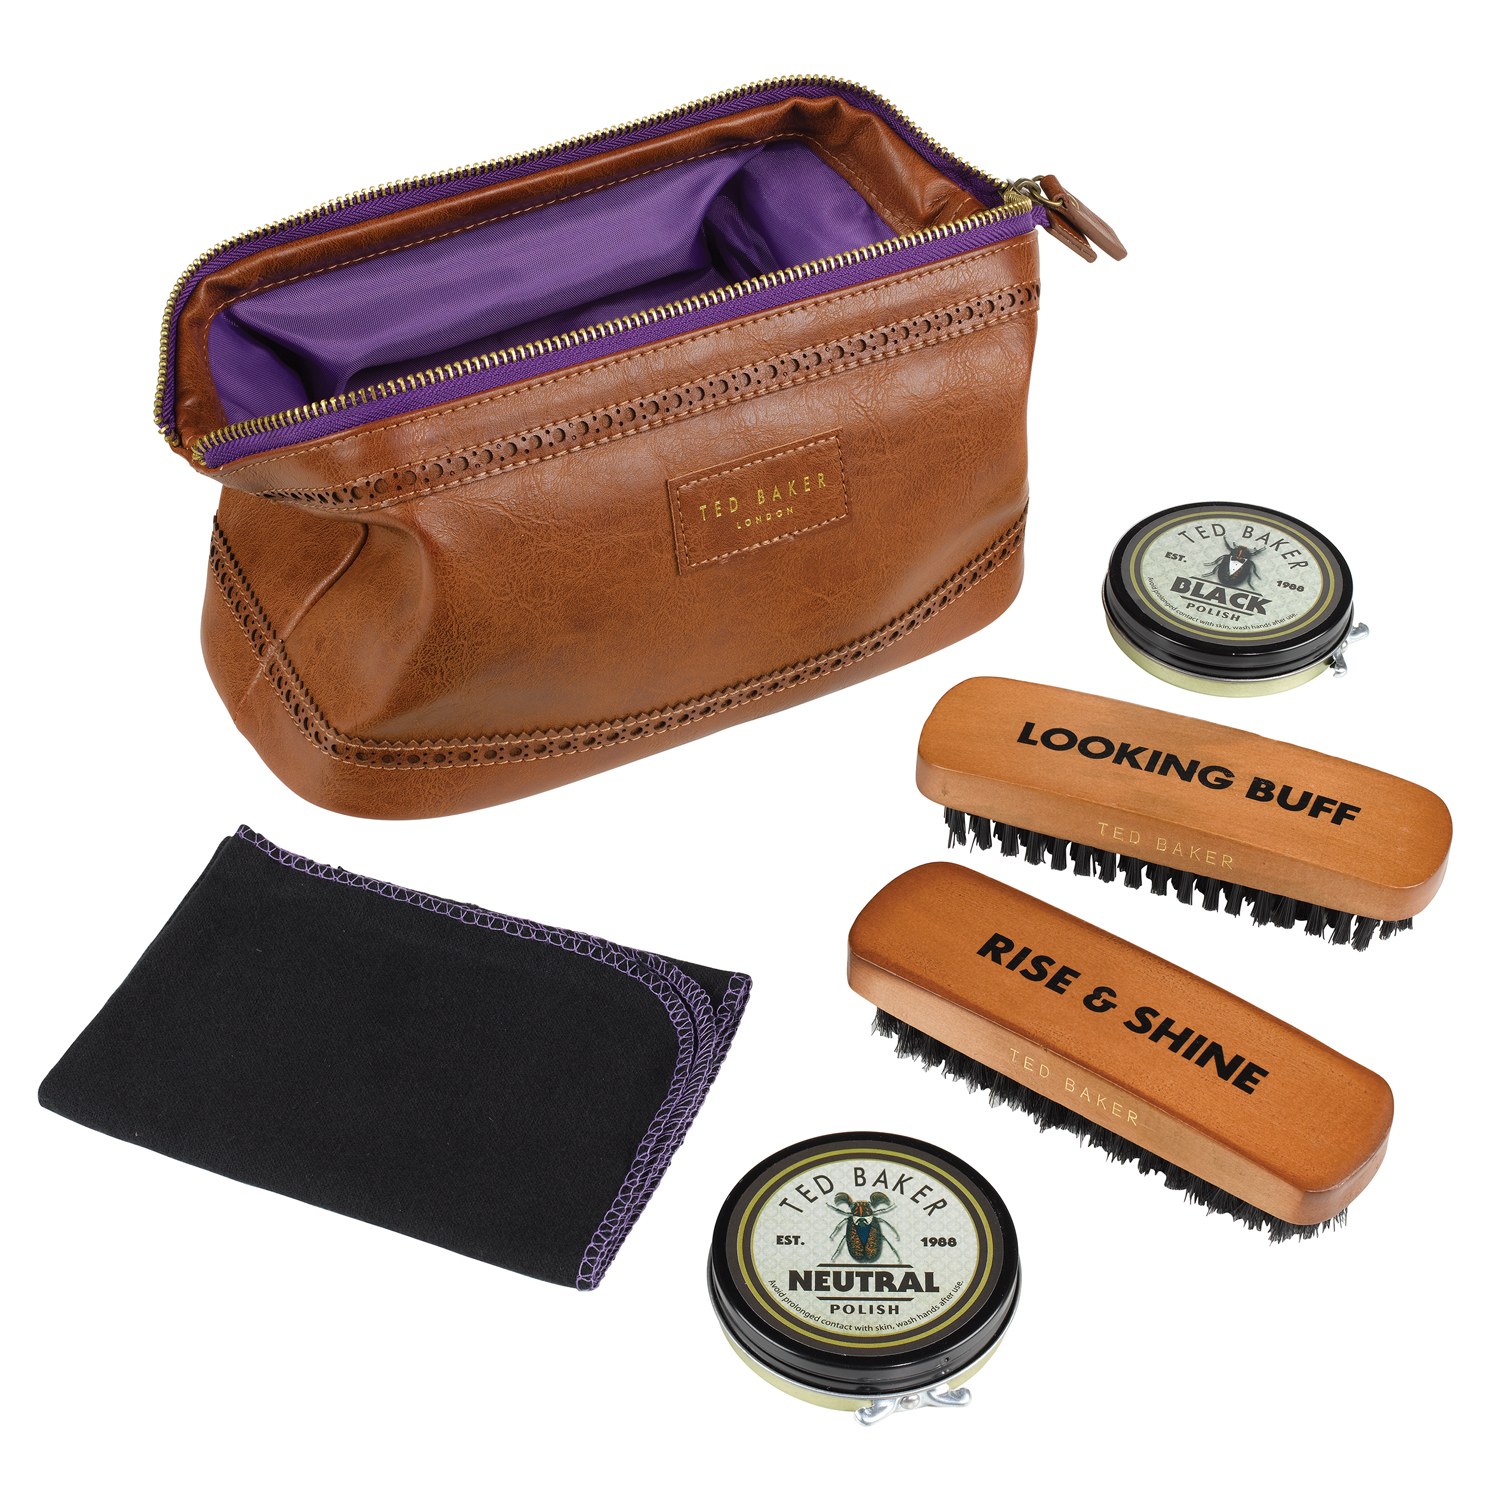 Ted Baker – 5 Piece Shoe Shine Kit in Brown Brogue Faux Leather Case